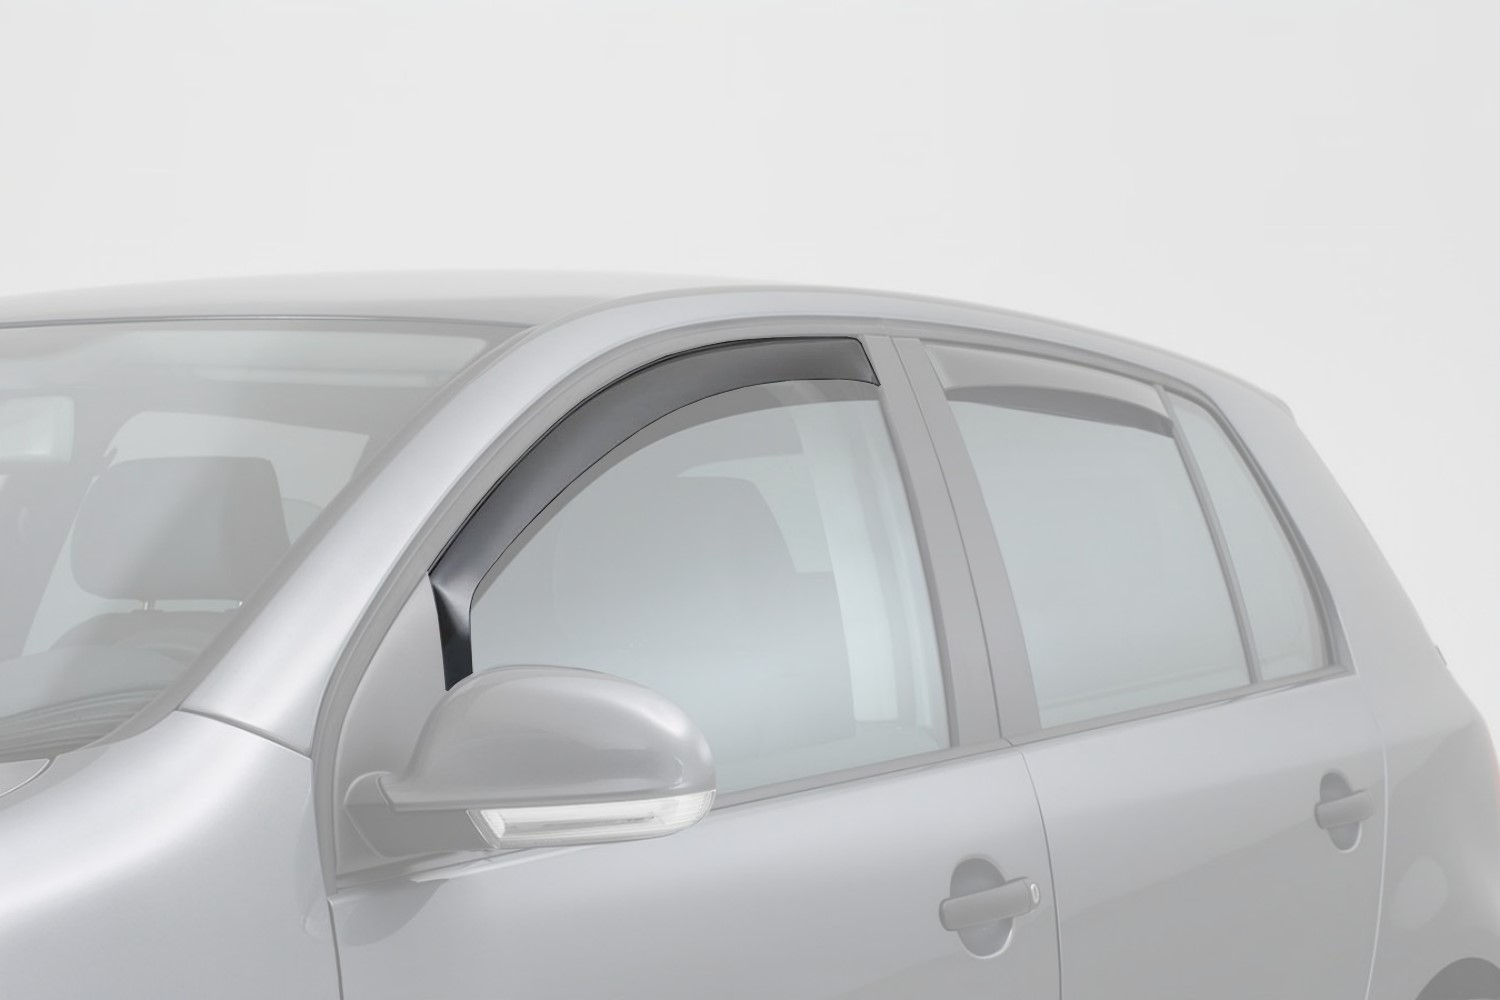 Dodge Durango II 2004-2009 side window deflectors front - dark transparent